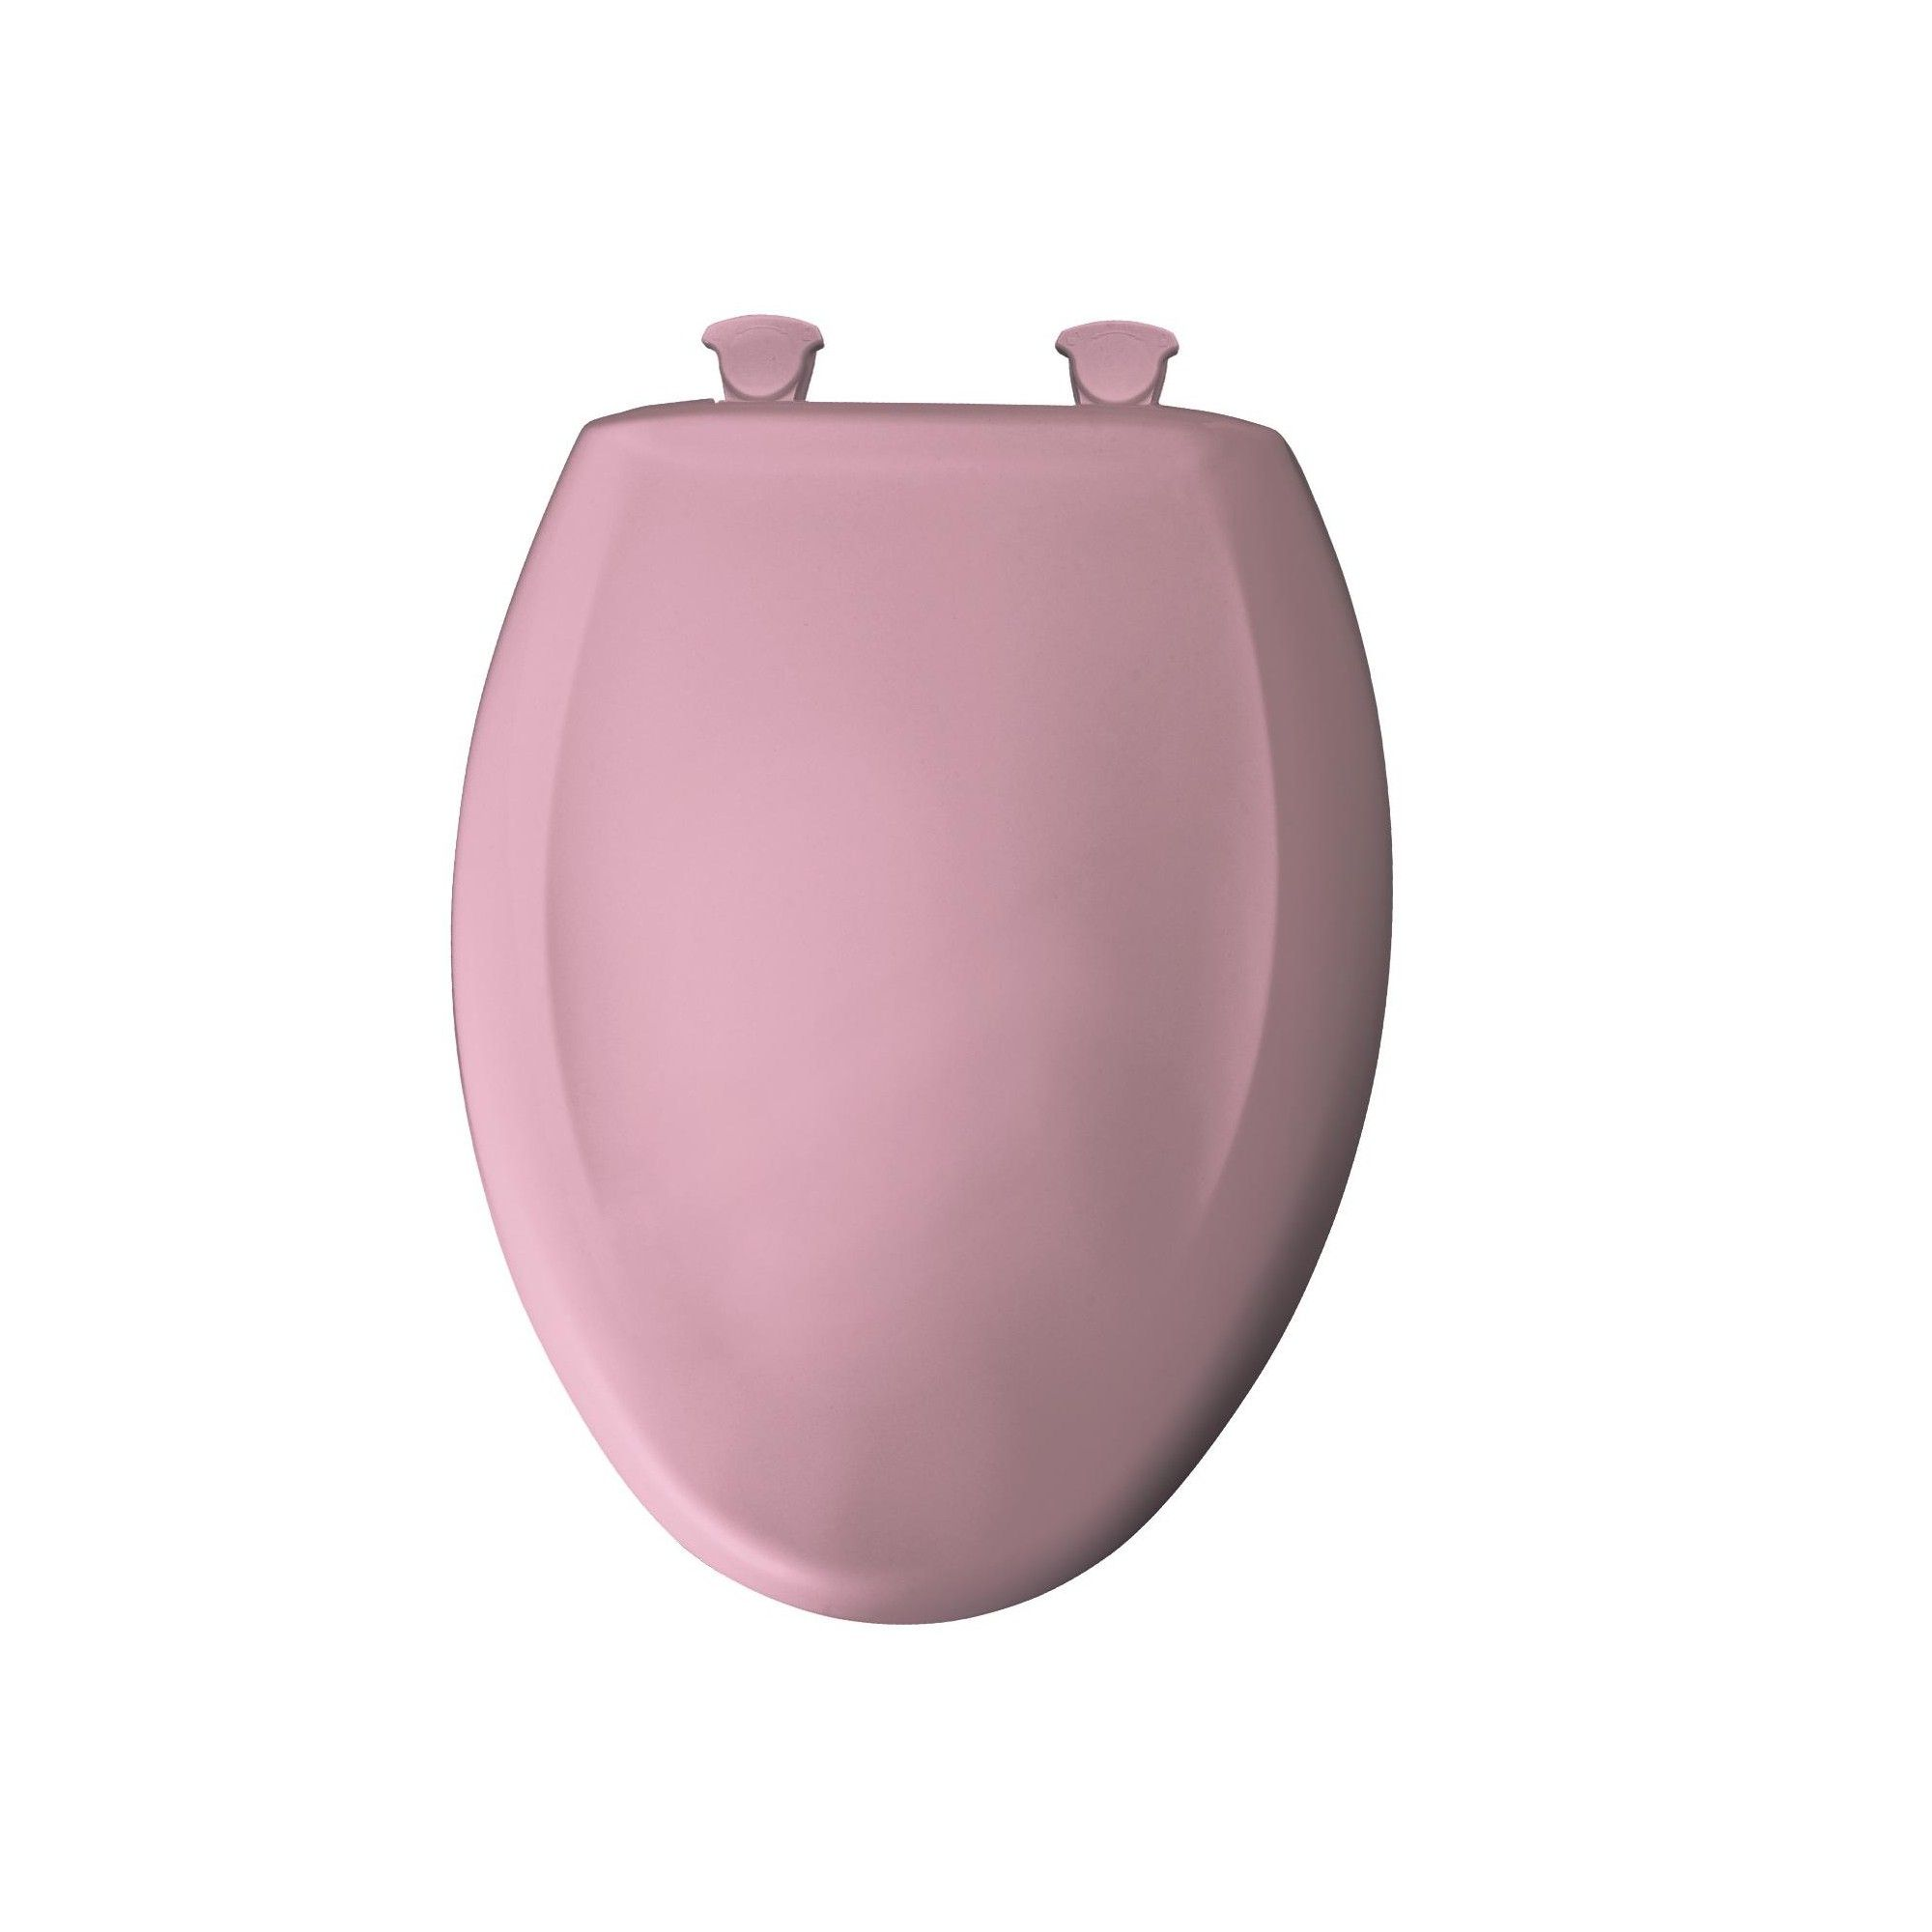 Elongated ClosedFront Toilet Seat and Lid with Whisper